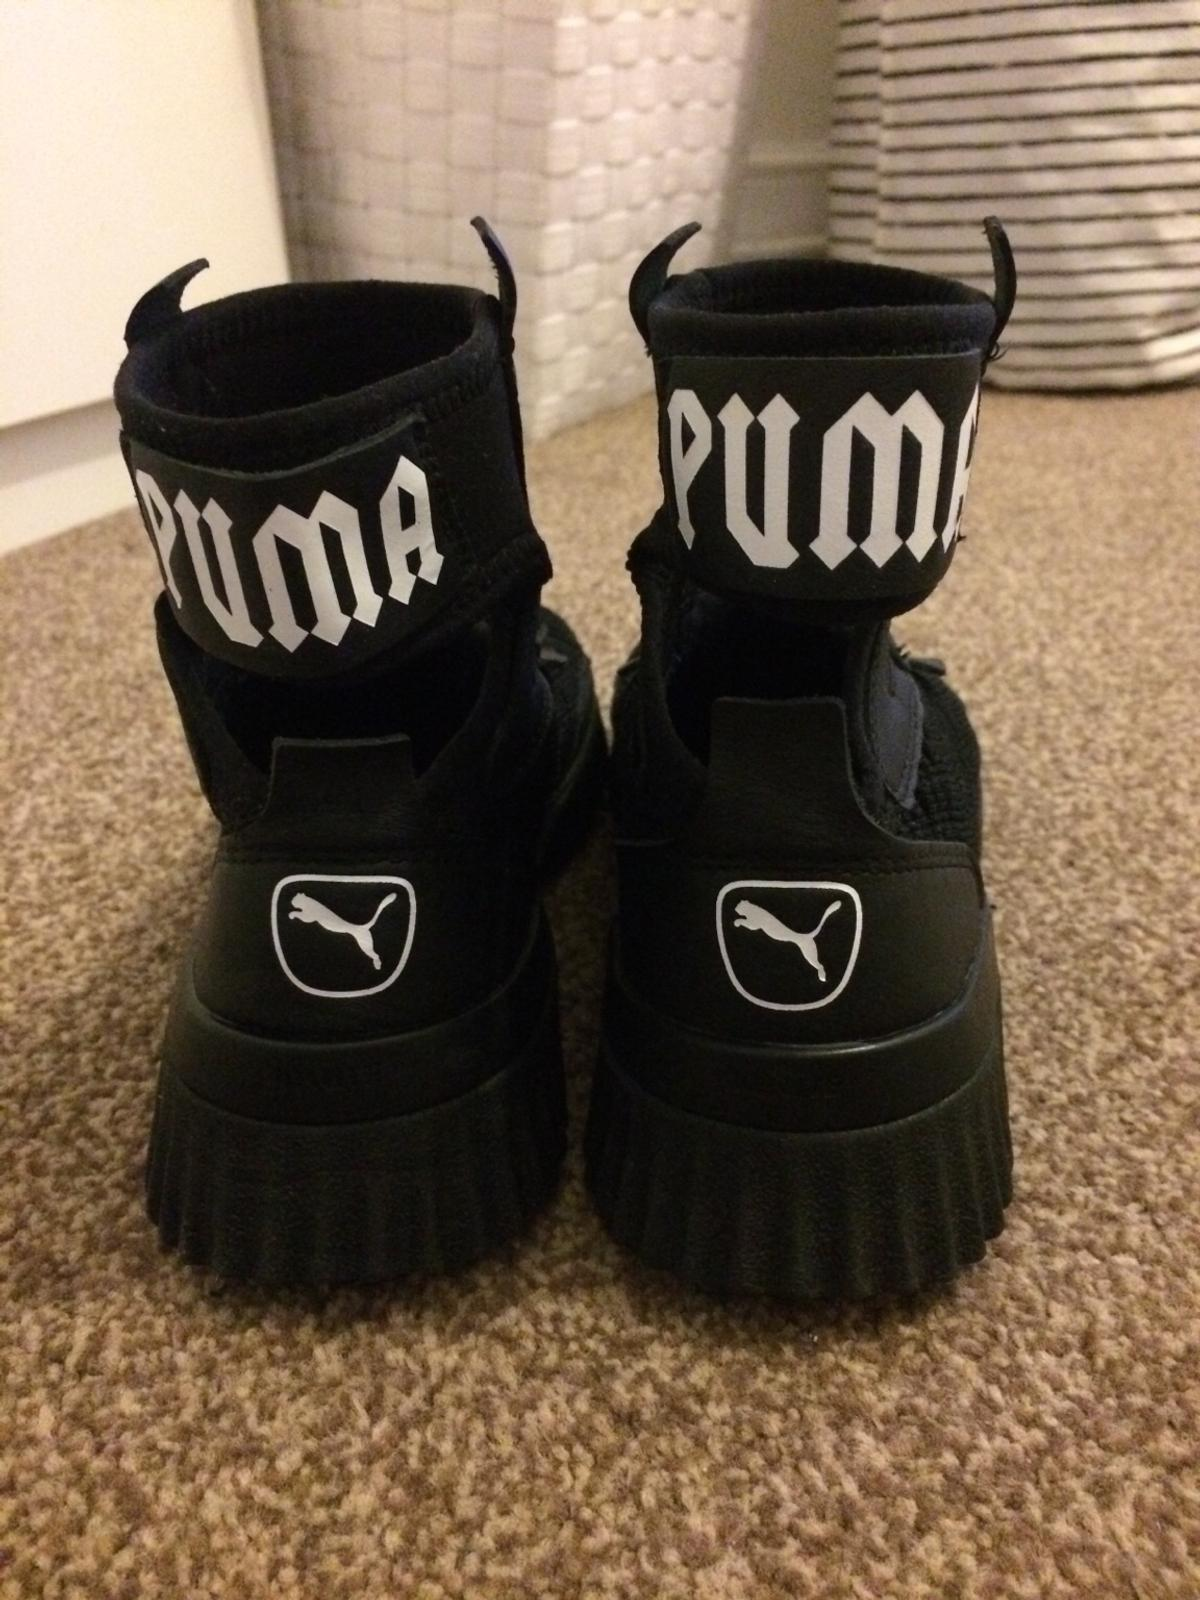 cheap for discount be015 55240 Rihanna Fenty Puma trainers in SM6 Sutton for £50.00 for ...